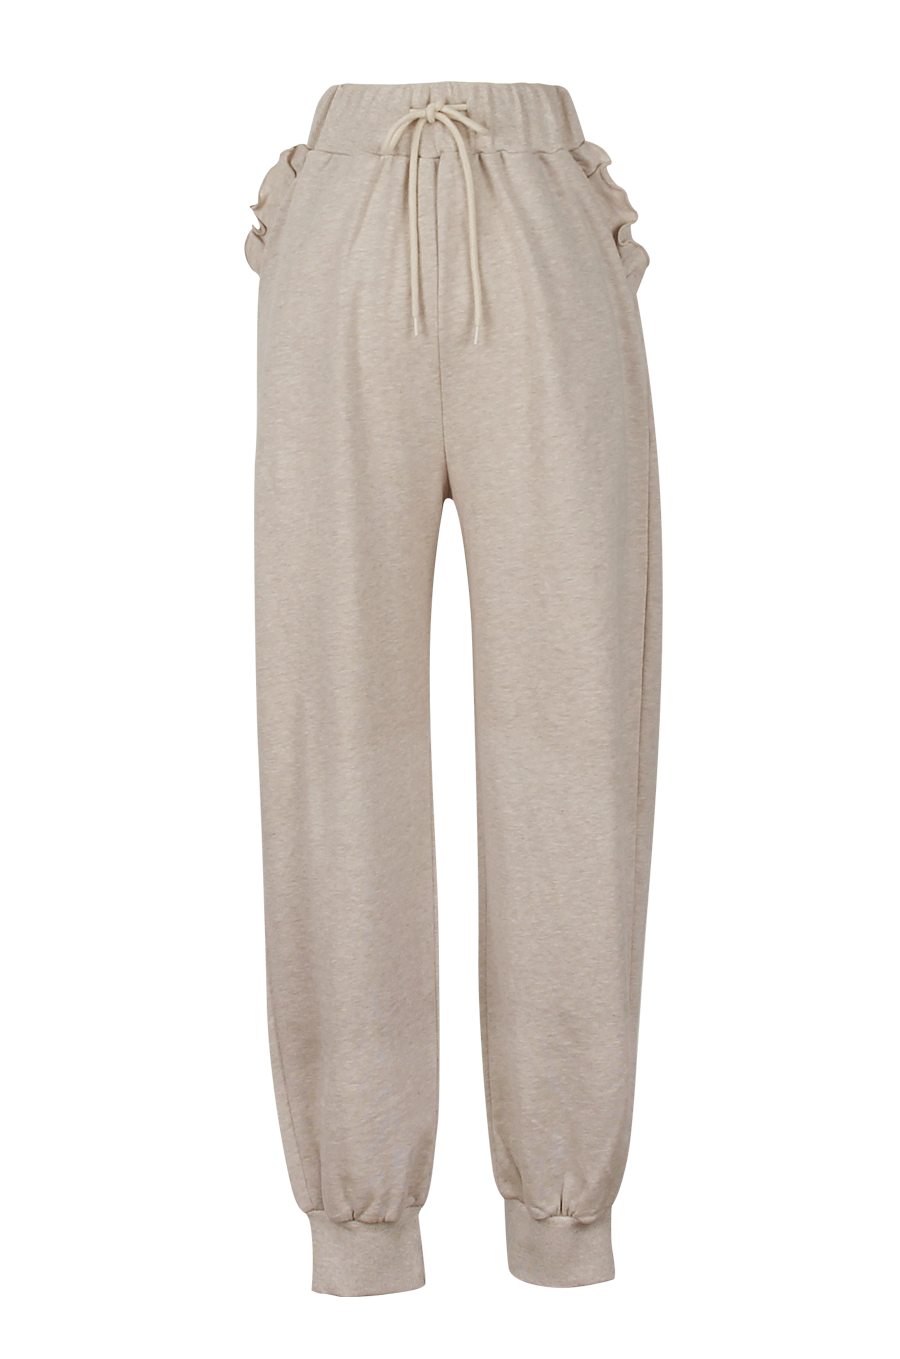 OLIVIA NZ Store online | Buttercup Frill Sweatpants / Oatmeal